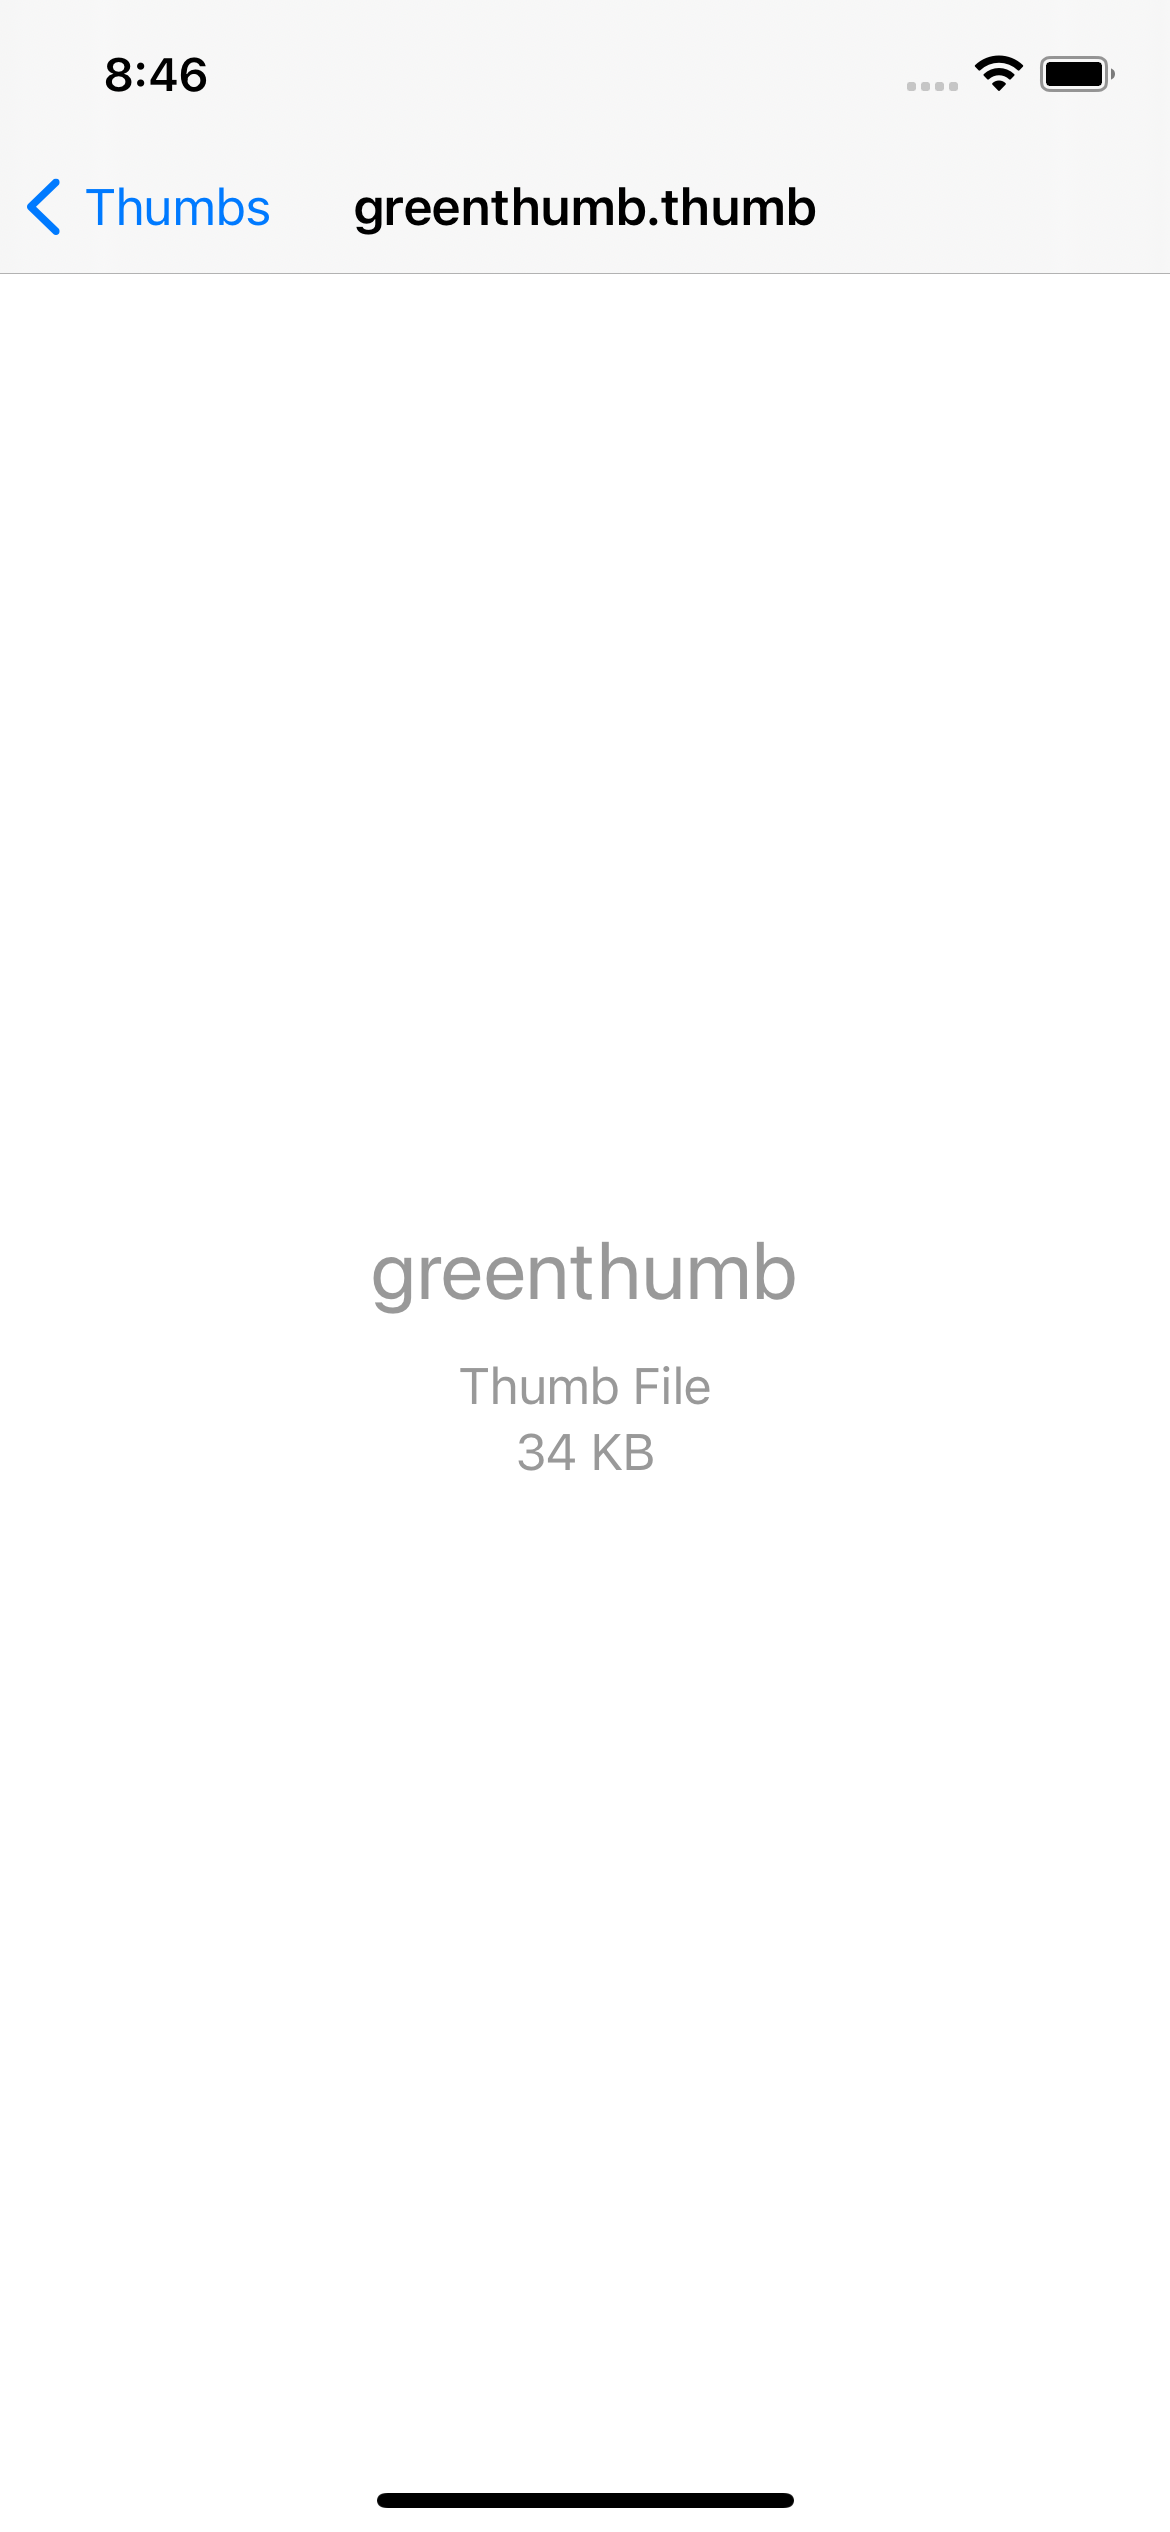 A screenshot of RazeThumb displaying the default preview of the custom .thumb file which consists of just the name of the Document Type and it's size